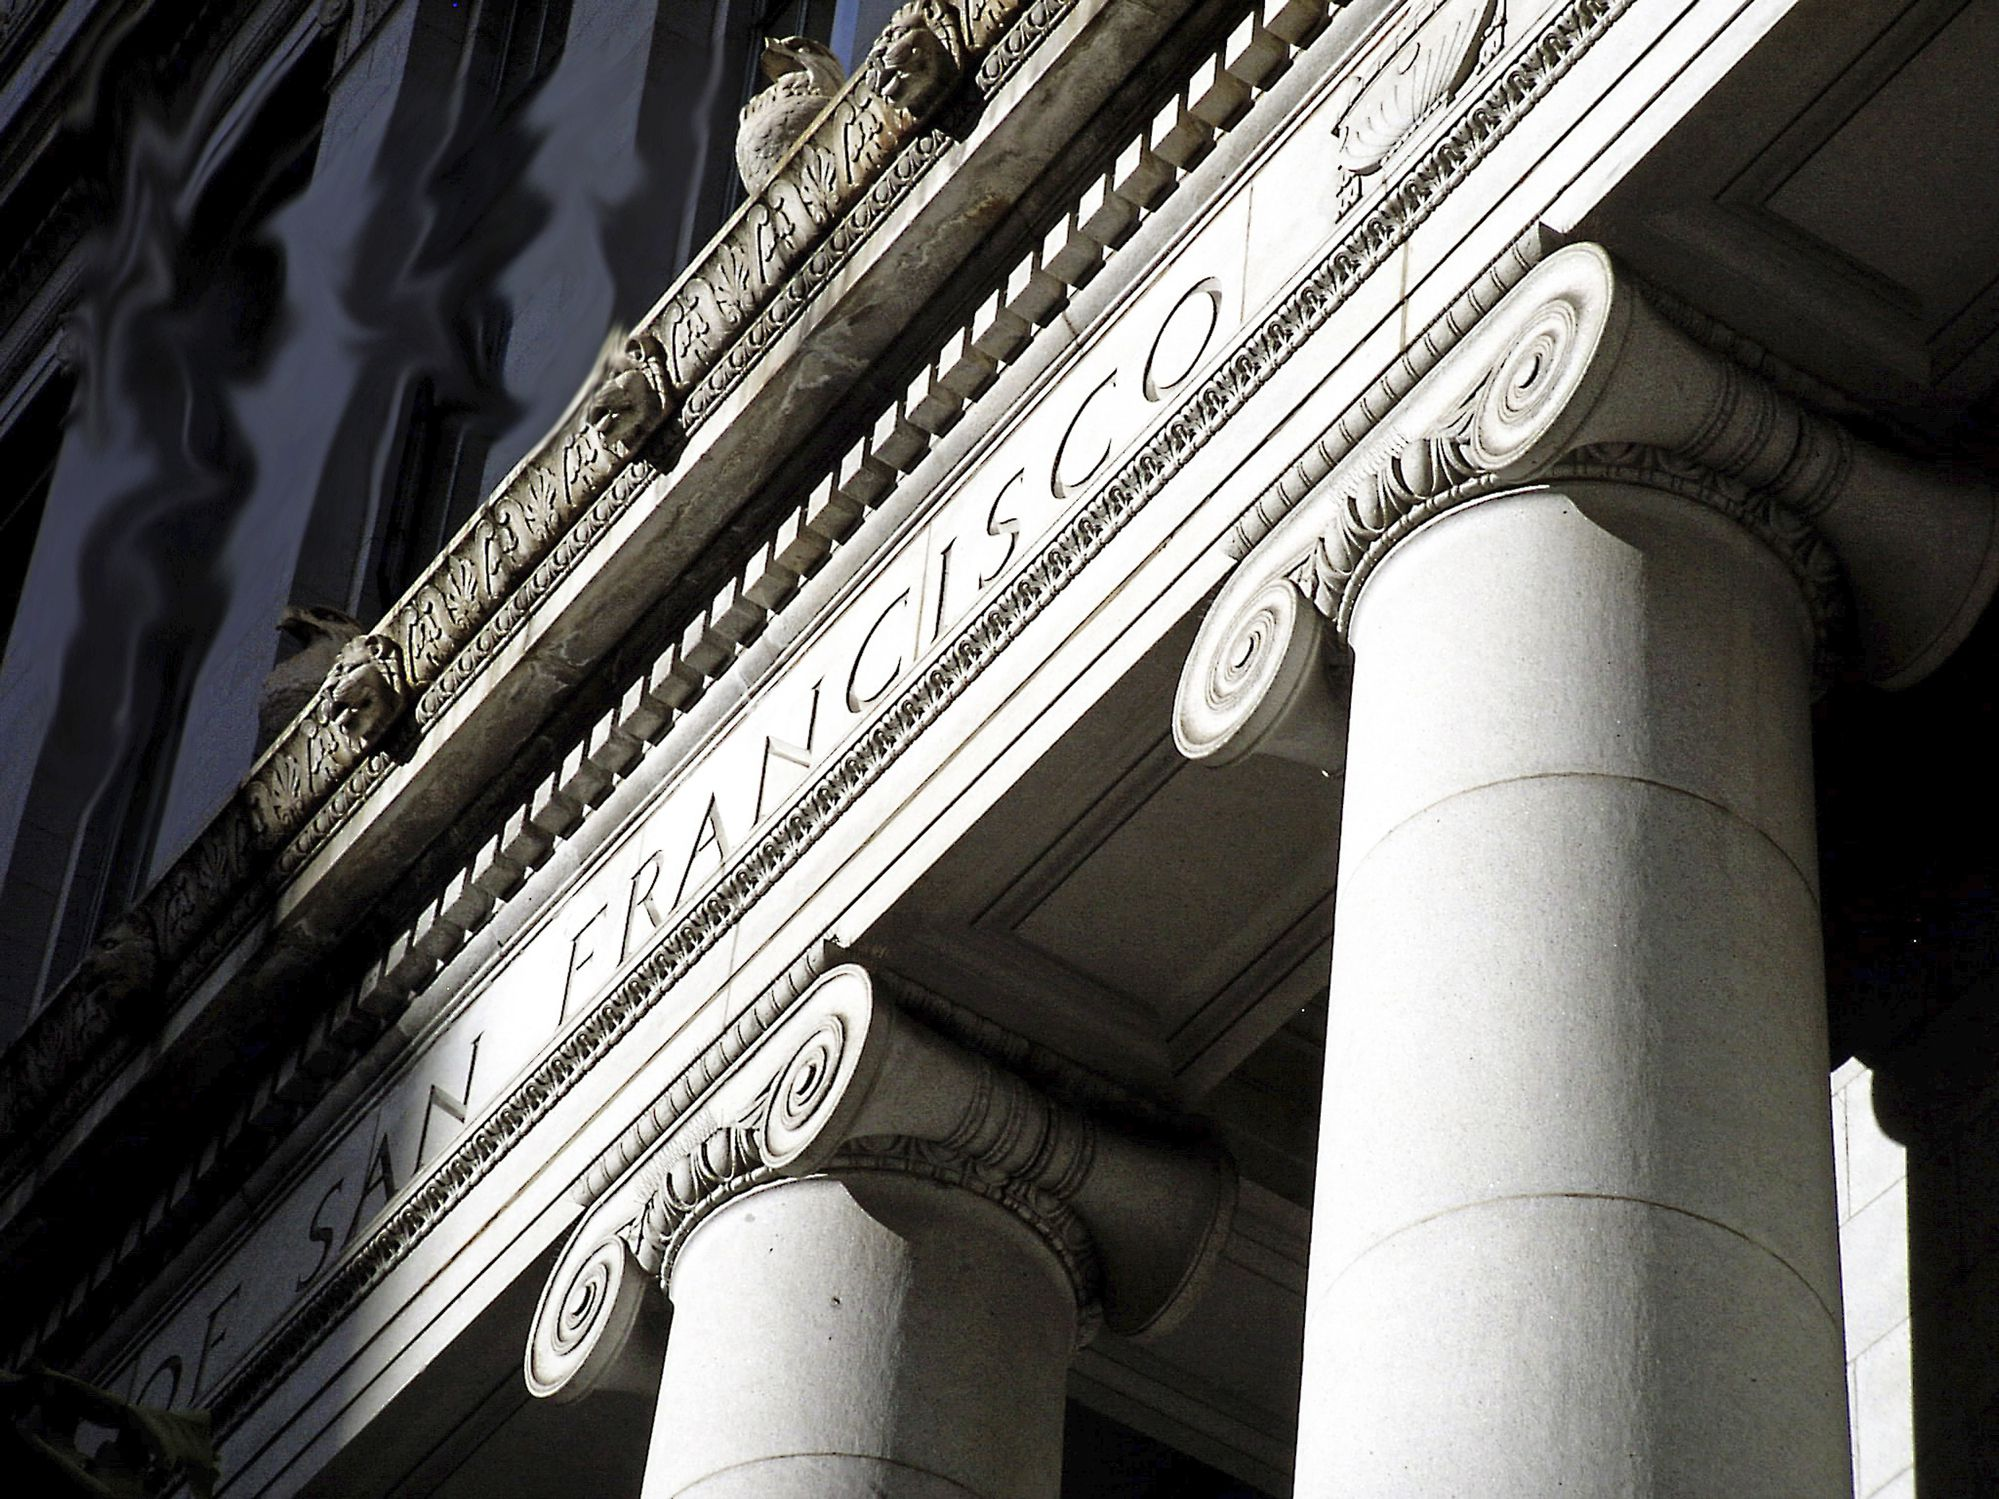 Western bank building clipart free black and white library The 9 Best West Coast Banks of 2019 library